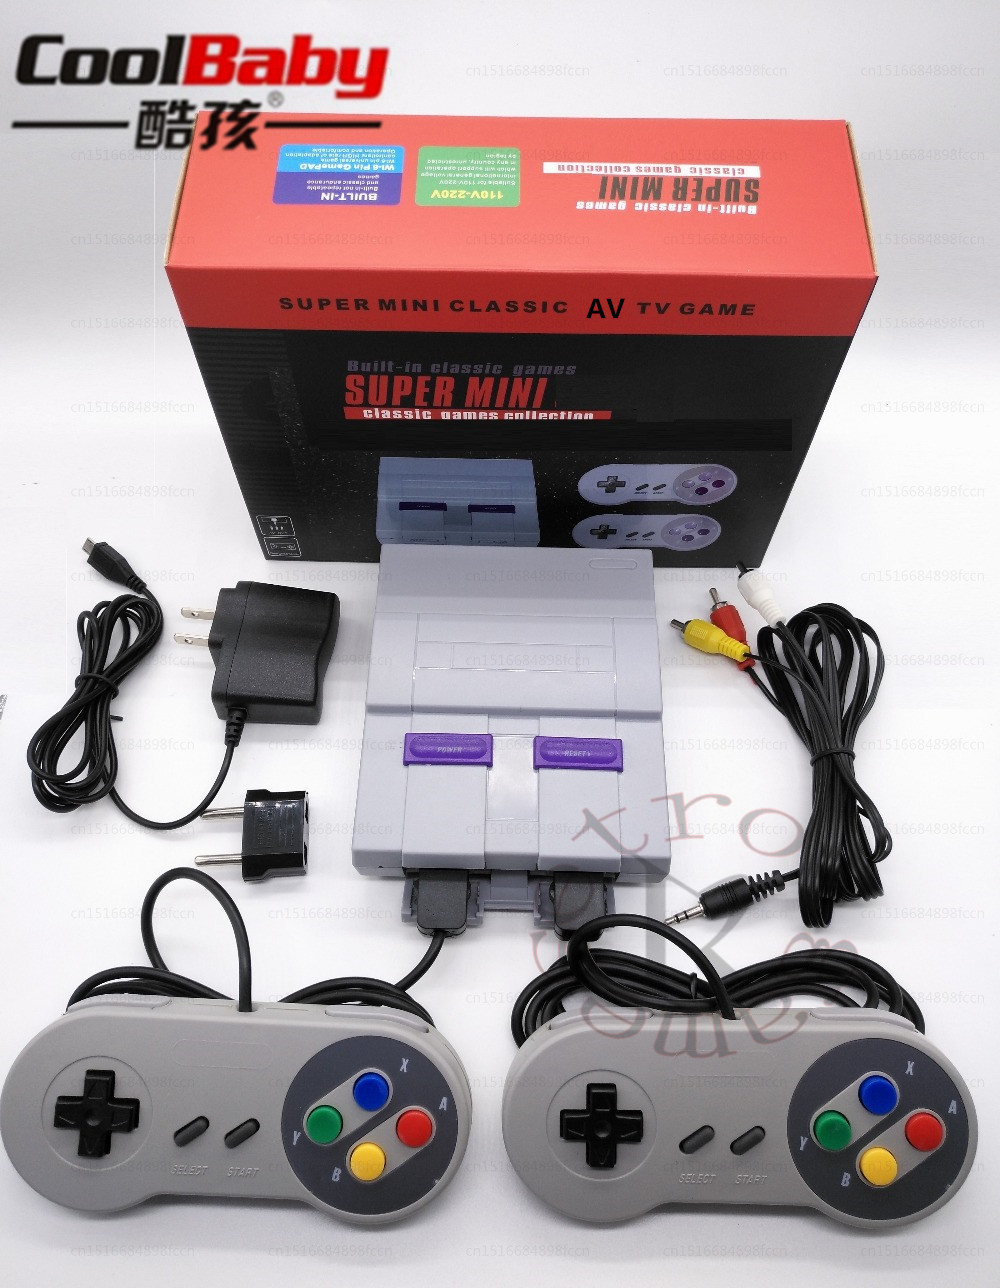 For Snes 16 Bit Games!! Retro Mini TV Video Game Console with 94 Built-in Different 16 Bit Games For Snes Two Gamepads AV OutFor Snes 16 Bit Games!! Retro Mini TV Video Game Console with 94 Built-in Different 16 Bit Games For Snes Two Gamepads AV Out